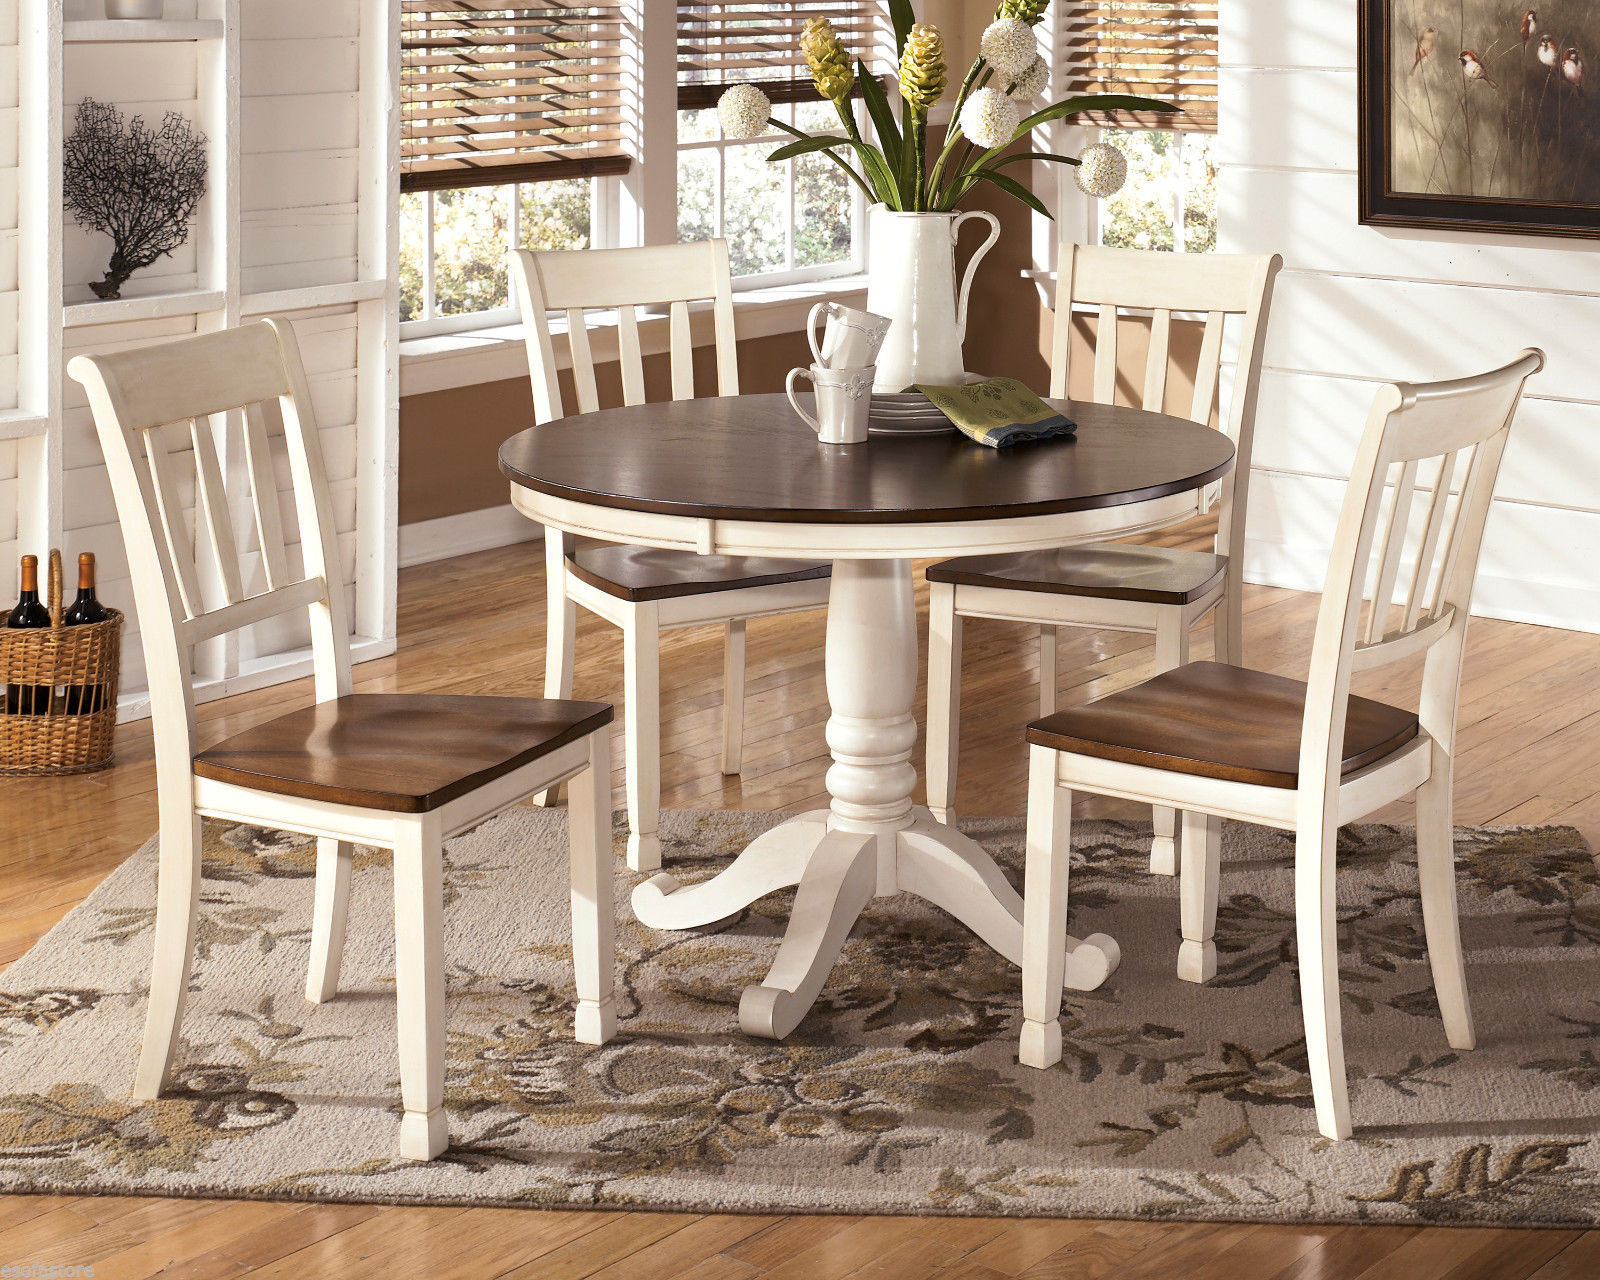 Whitesburg Brown Cottage White Dining Room Chair Set Of 2 By Ashley D